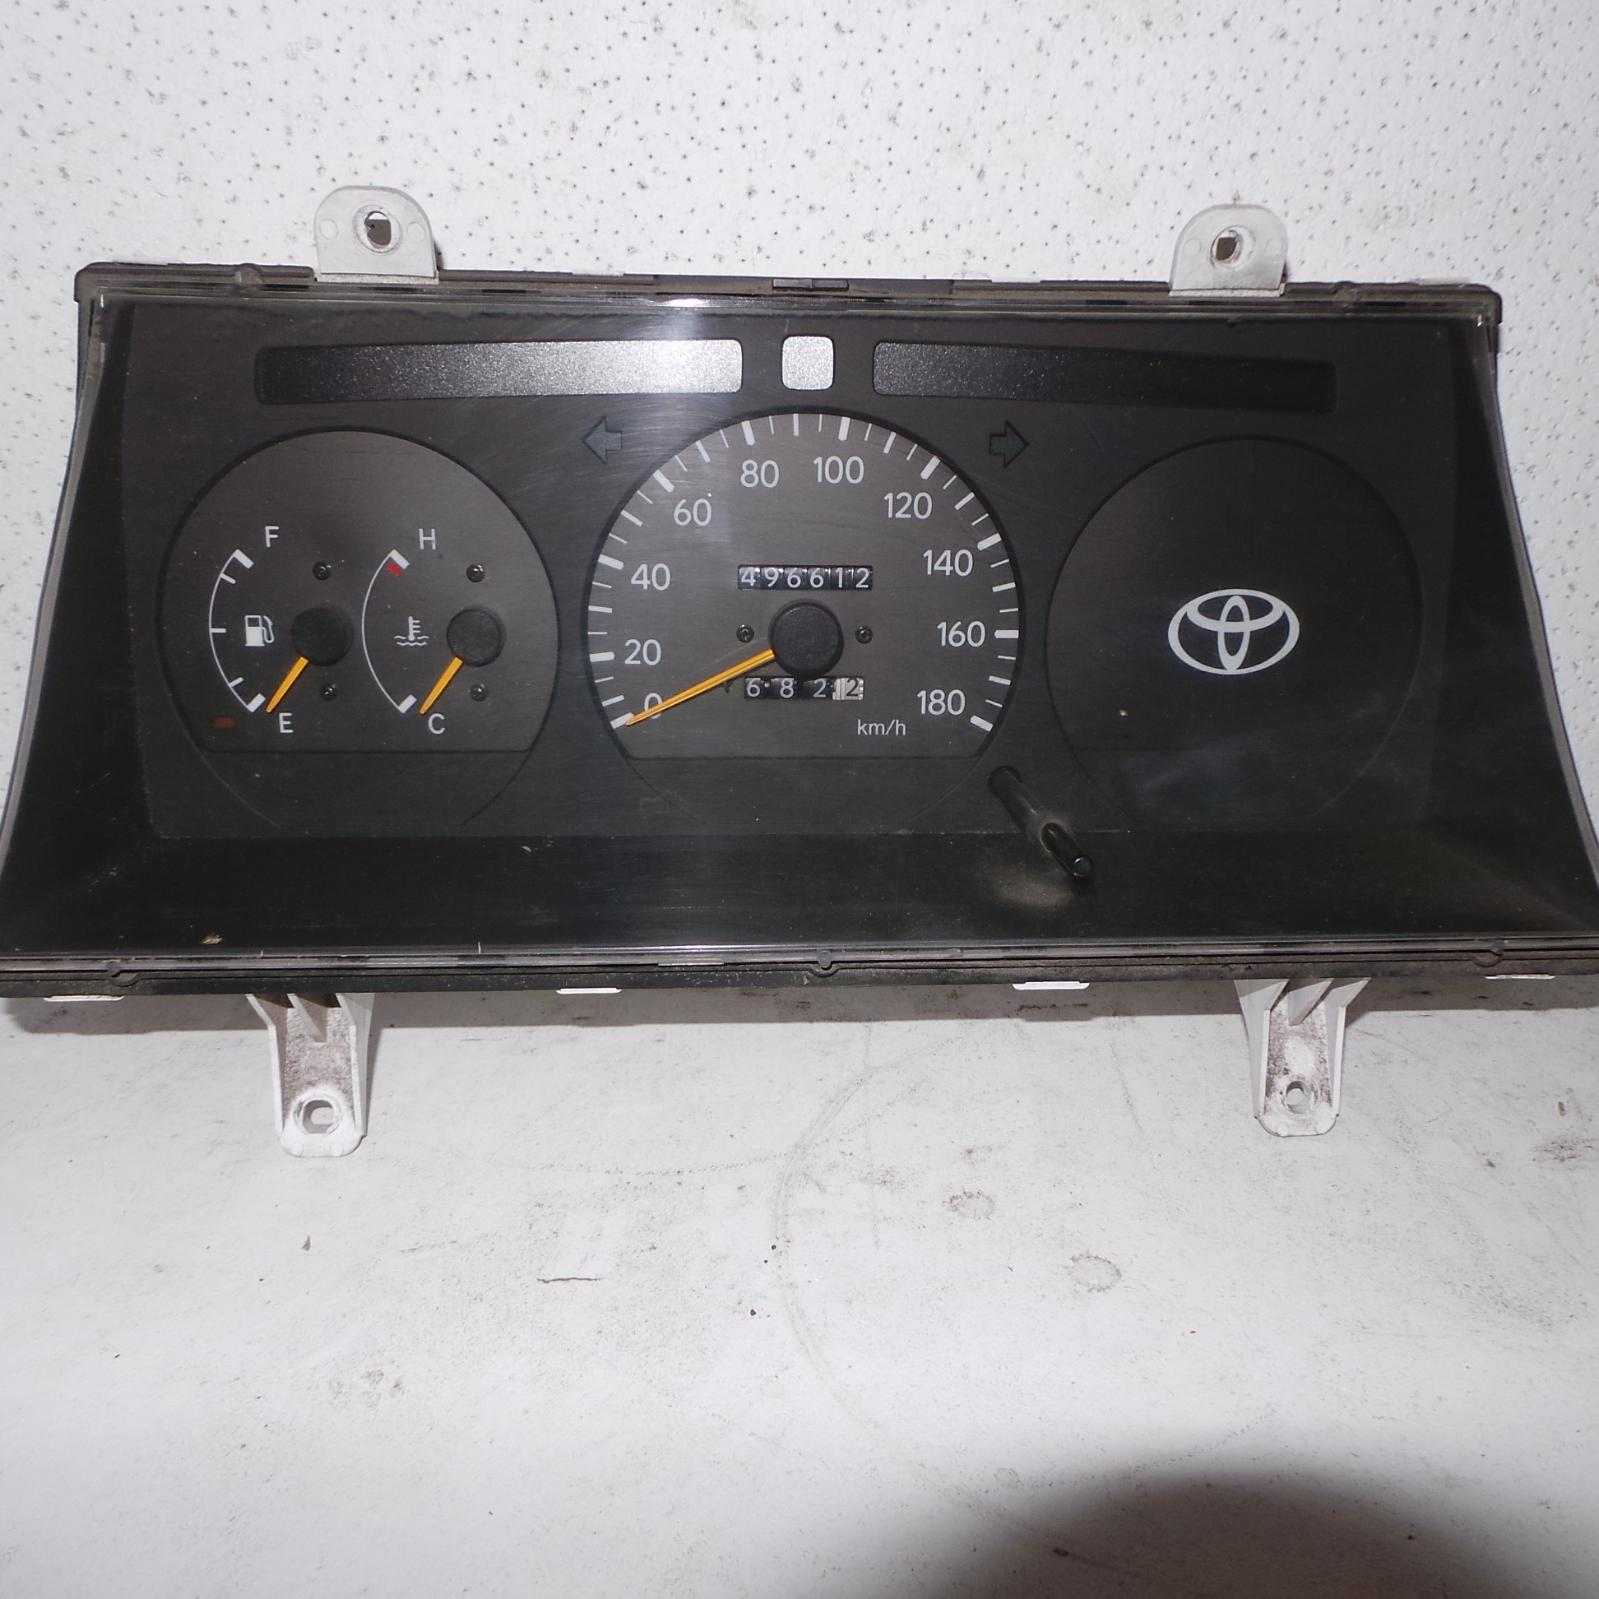 TOYOTA HIACE, Instrument Cluster, PETROL, MANUAL T/M, NON TACHO TYPE, LH/RZH10#, 09/98-12/04